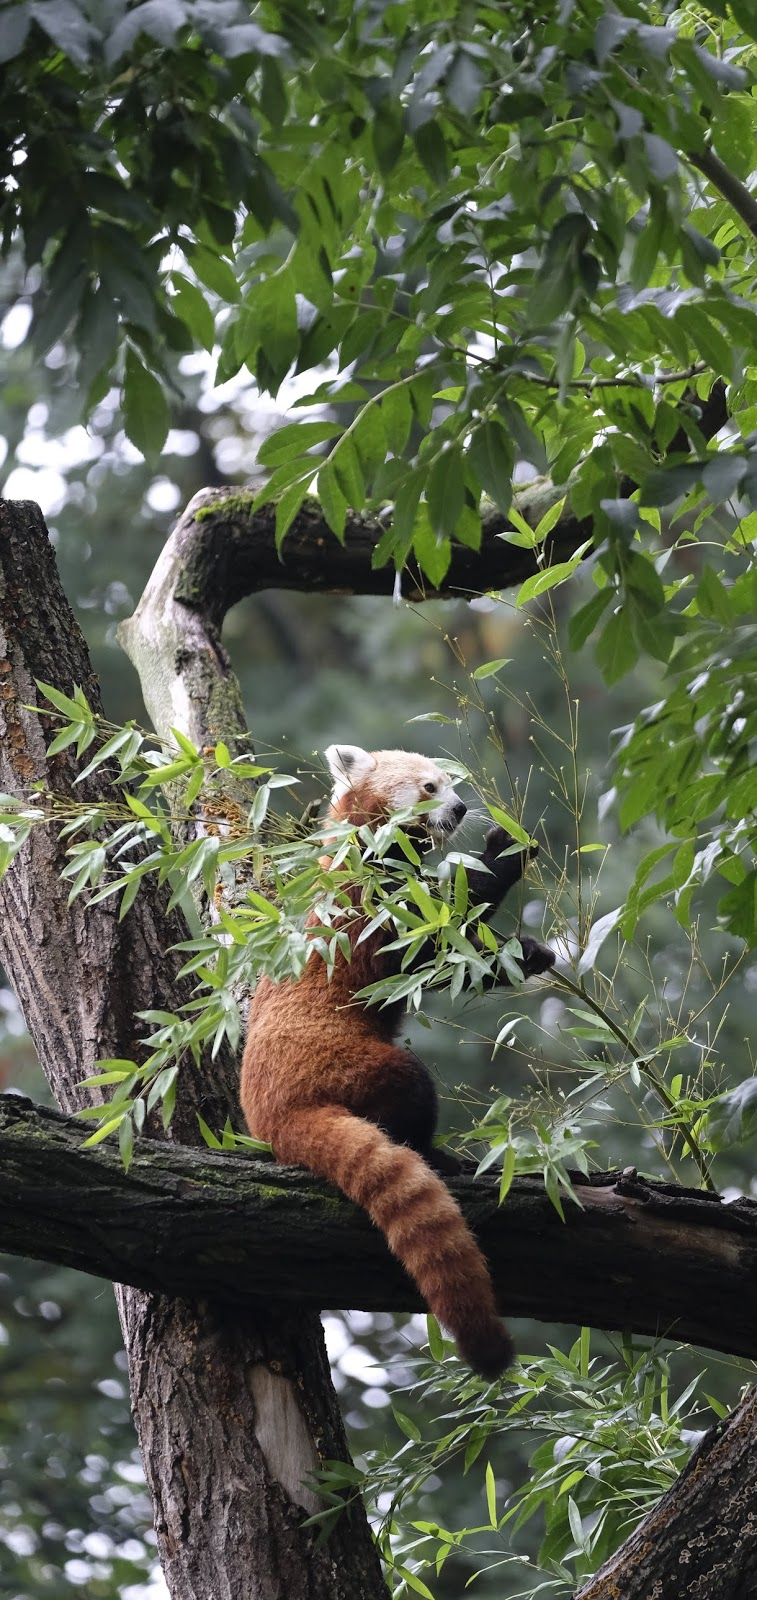 A red panda eating leaves.